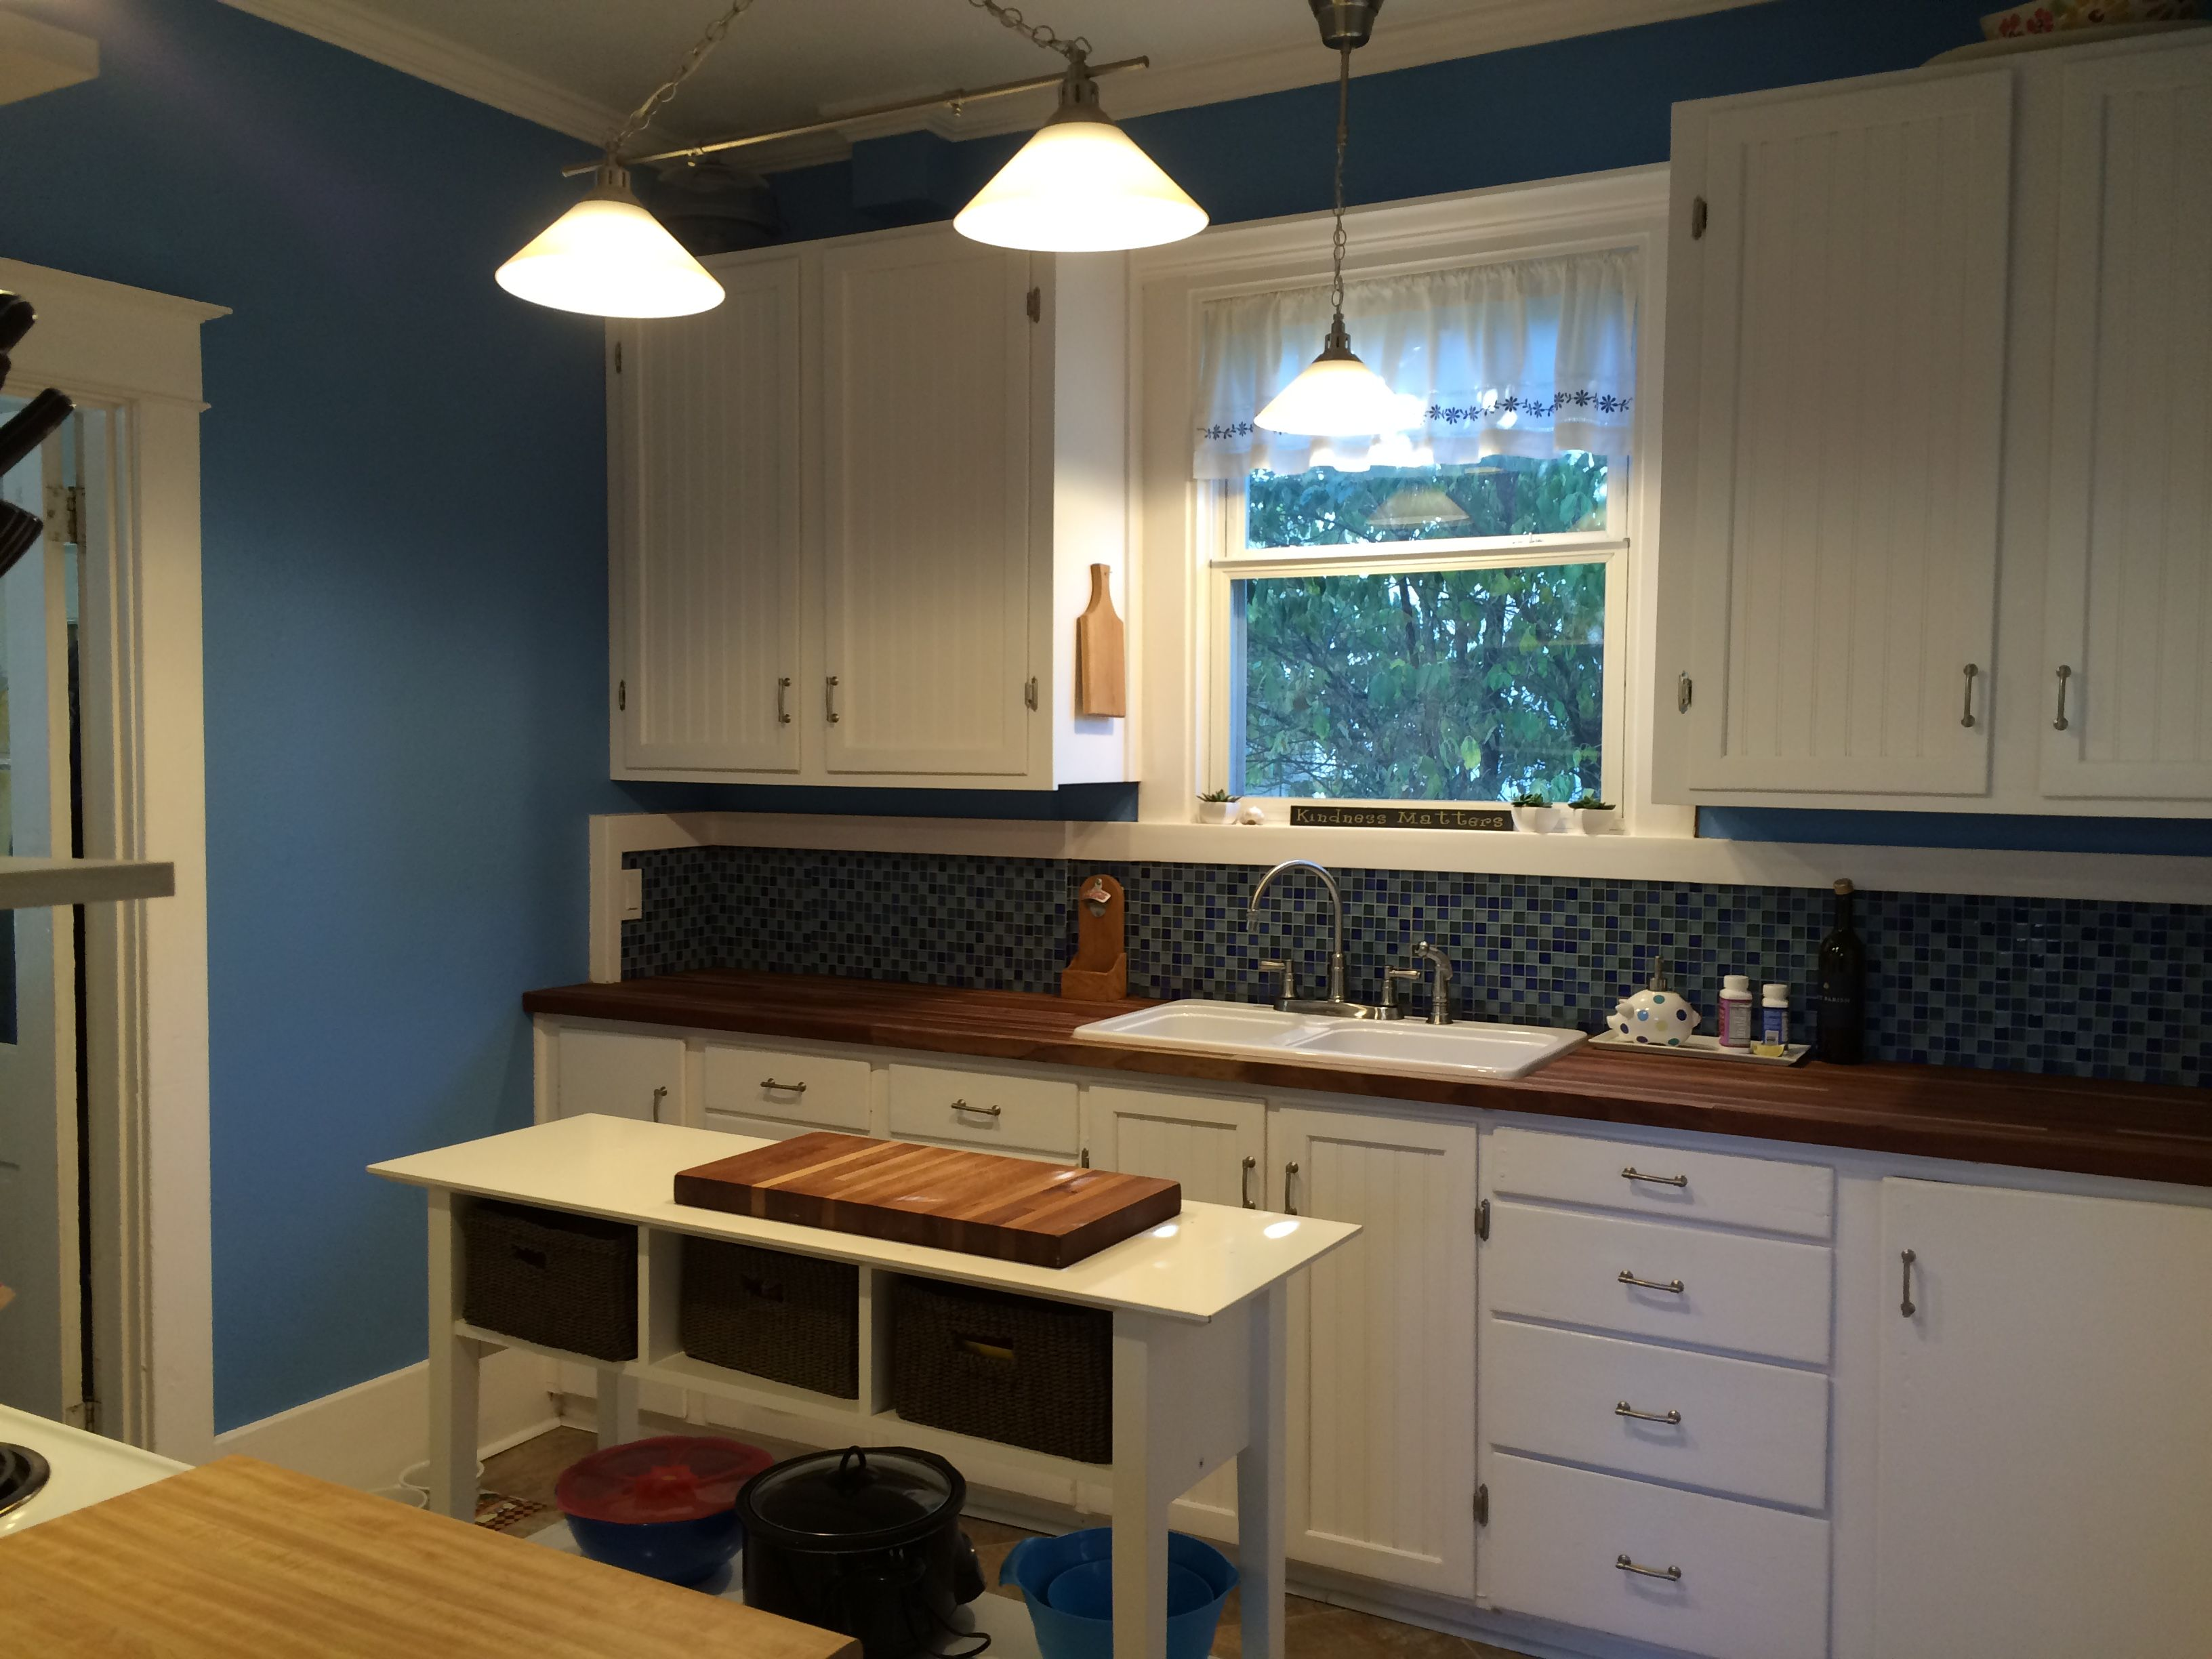 blue tile backslash home depot island ikea sideboard baskets world market butcher block counter tops from lumber liquidators best